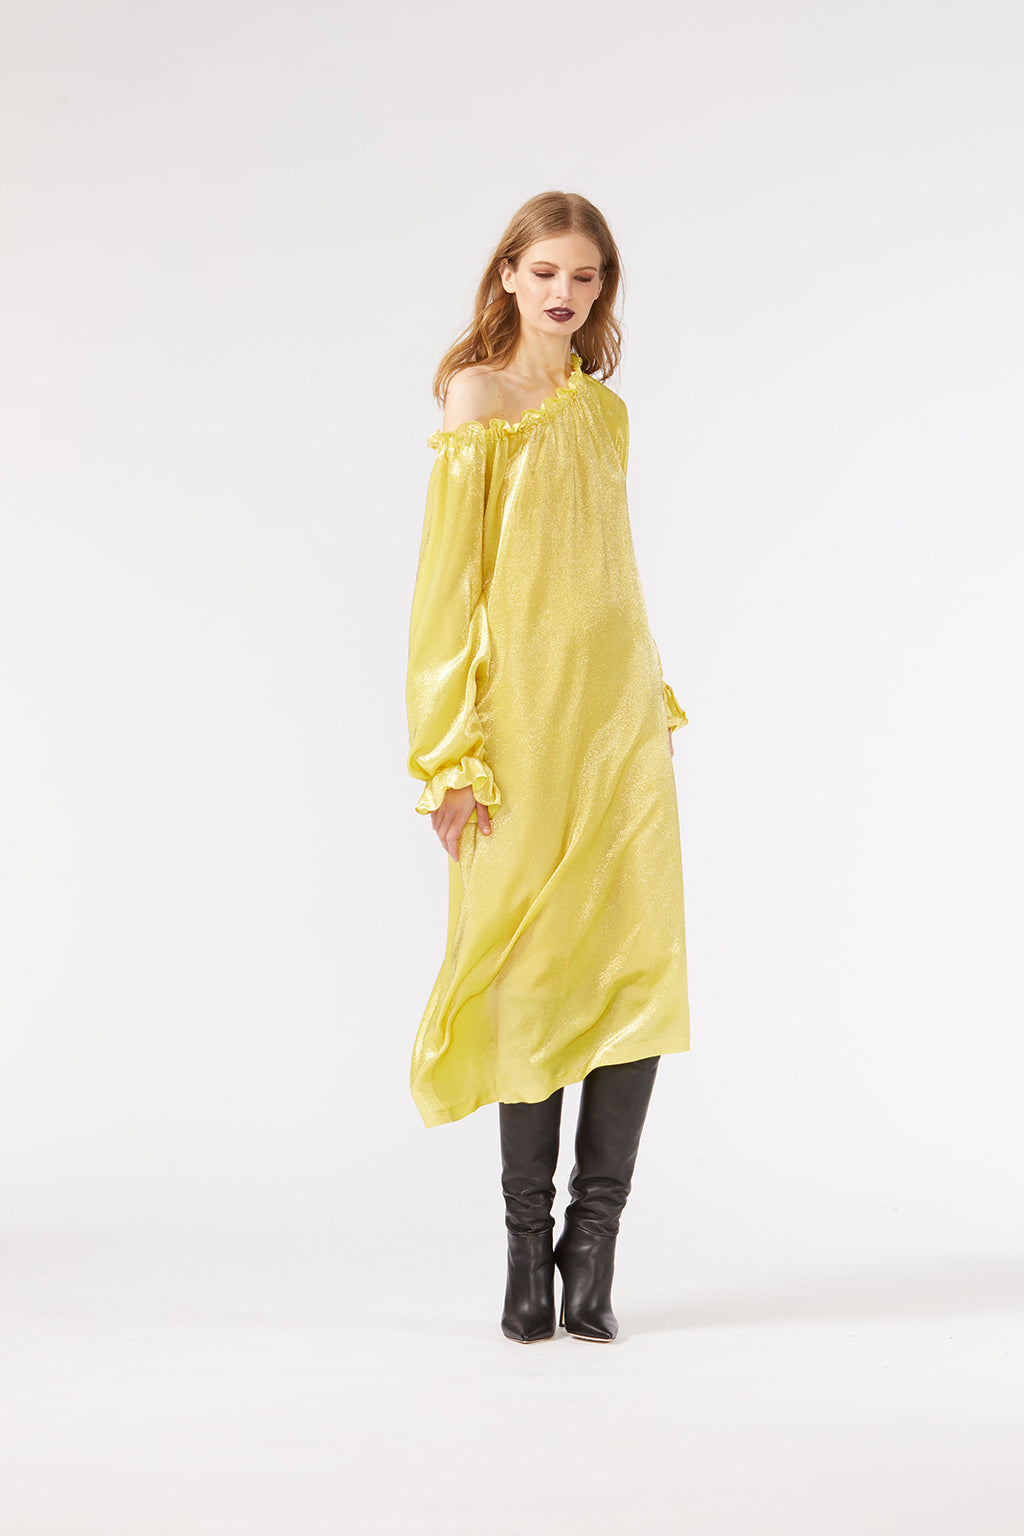 Cynthia Rowley Fall 2018 look 30 featuring an off-shoulder dress in yellow shimmer silky fabric.